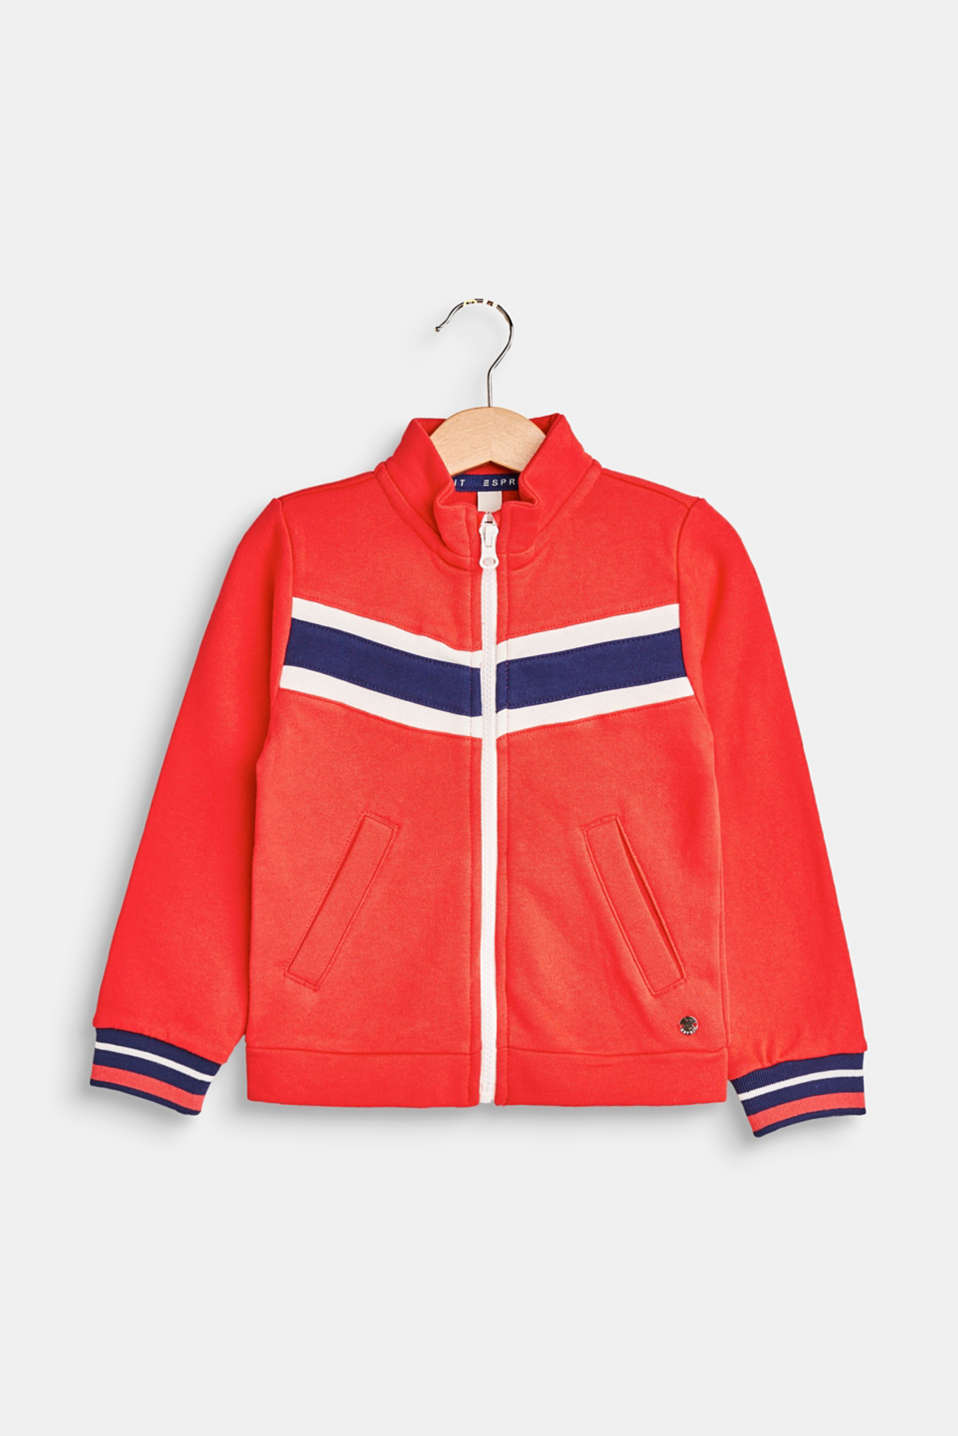 This zip-up jacket features a sporty design and is mega comfy in cotton sweatshirt fabric and stands out with colour blocking and striped cuffs.